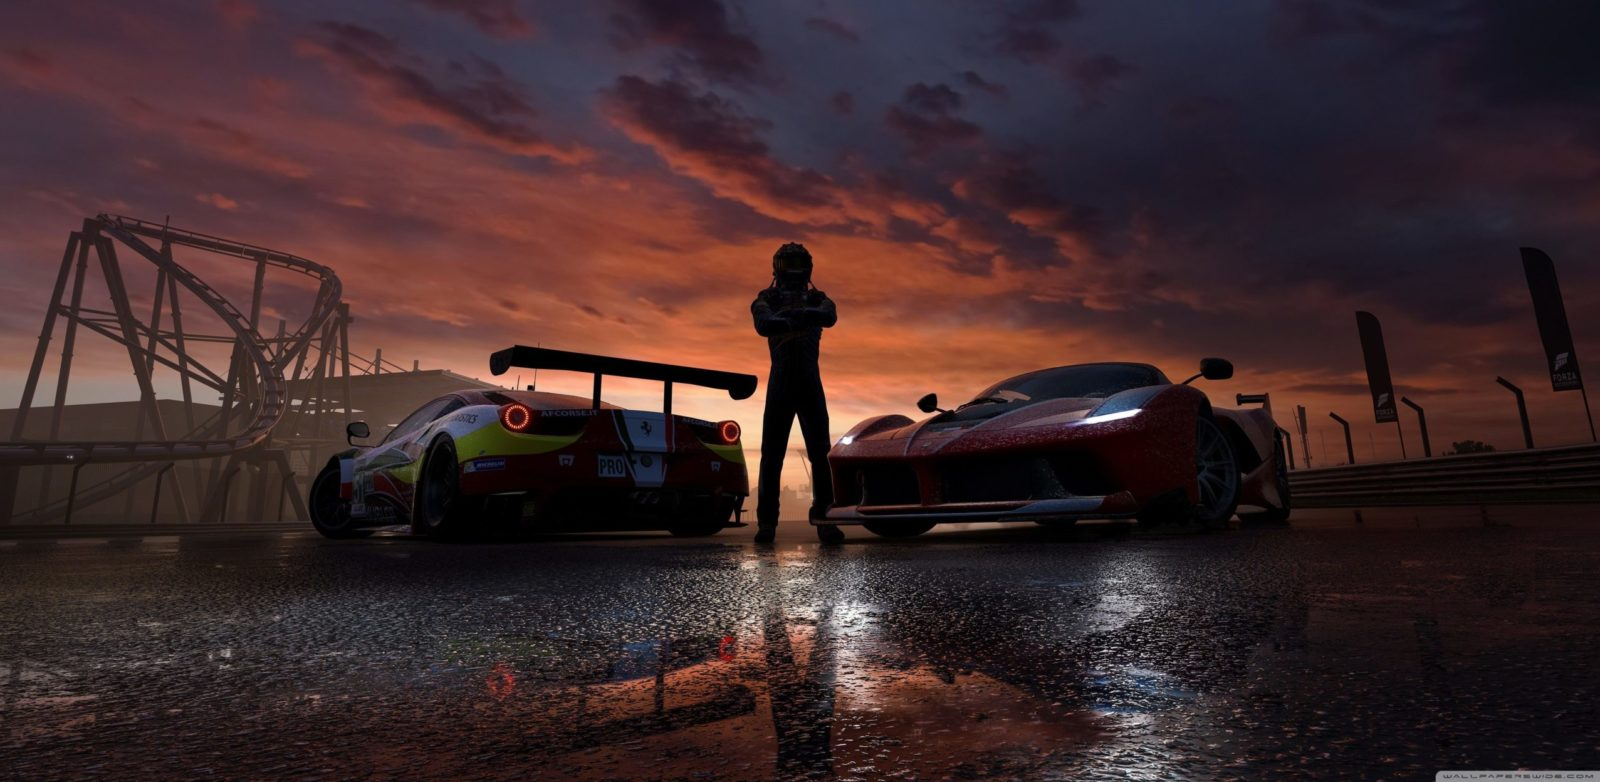 Top 6 racing games on mobile for thumb drifters